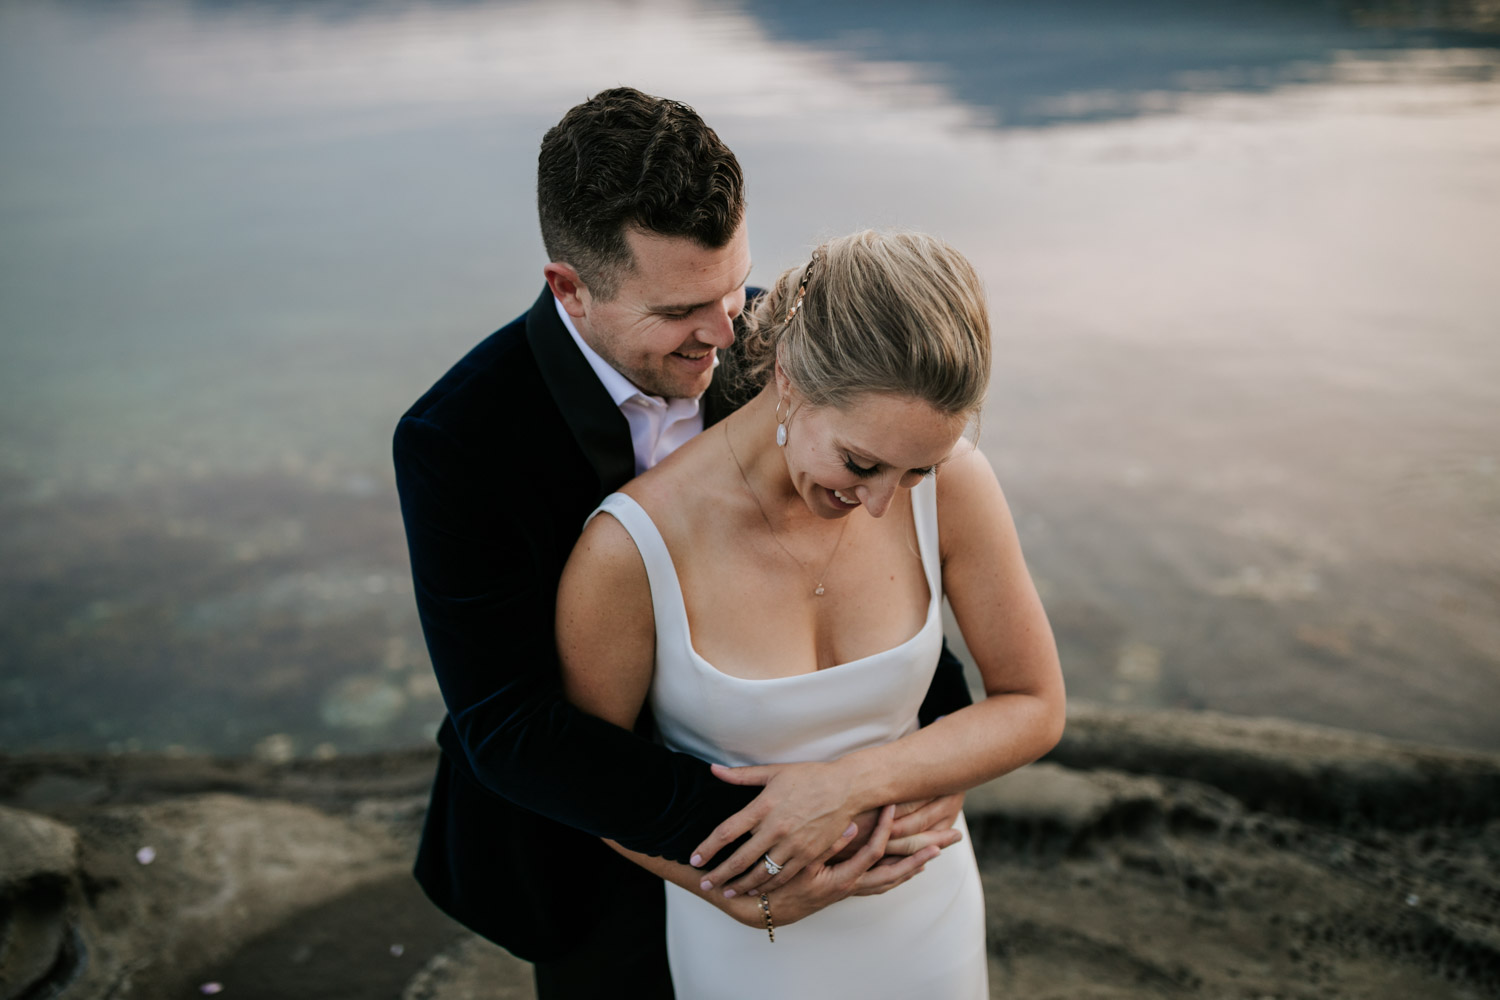 Modern Vancouver Island Wedding Photographer based in Victoria